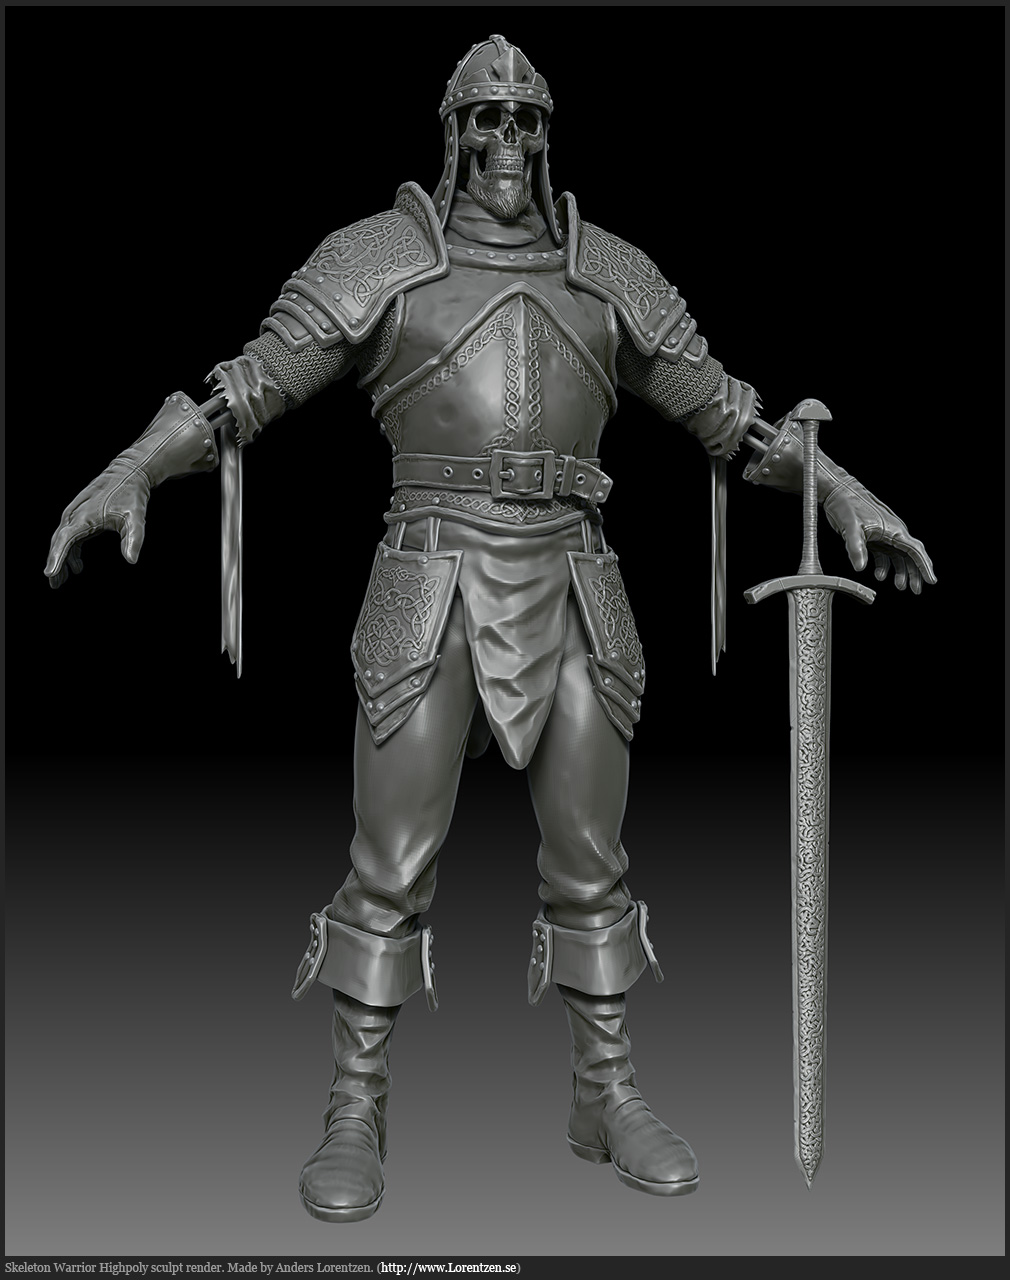 20121010_skeleton_highpoly_render_b.jpg